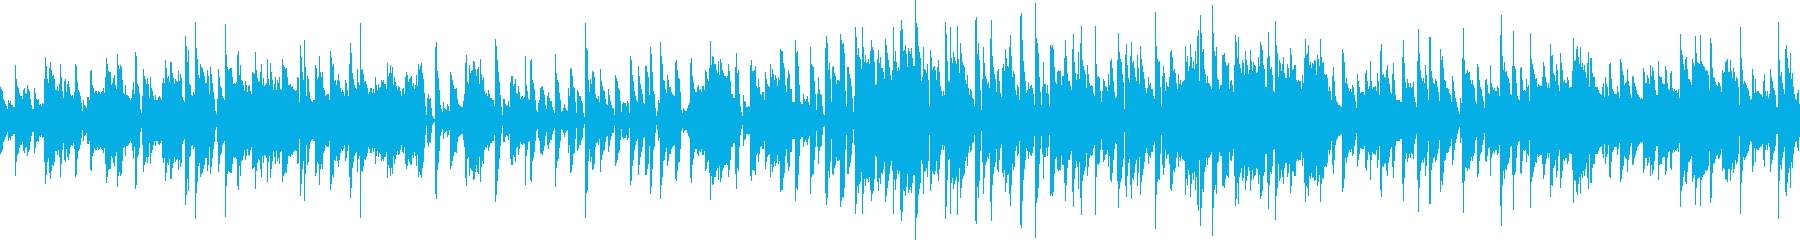 Casino music (loop specification)'s reproduced waveform